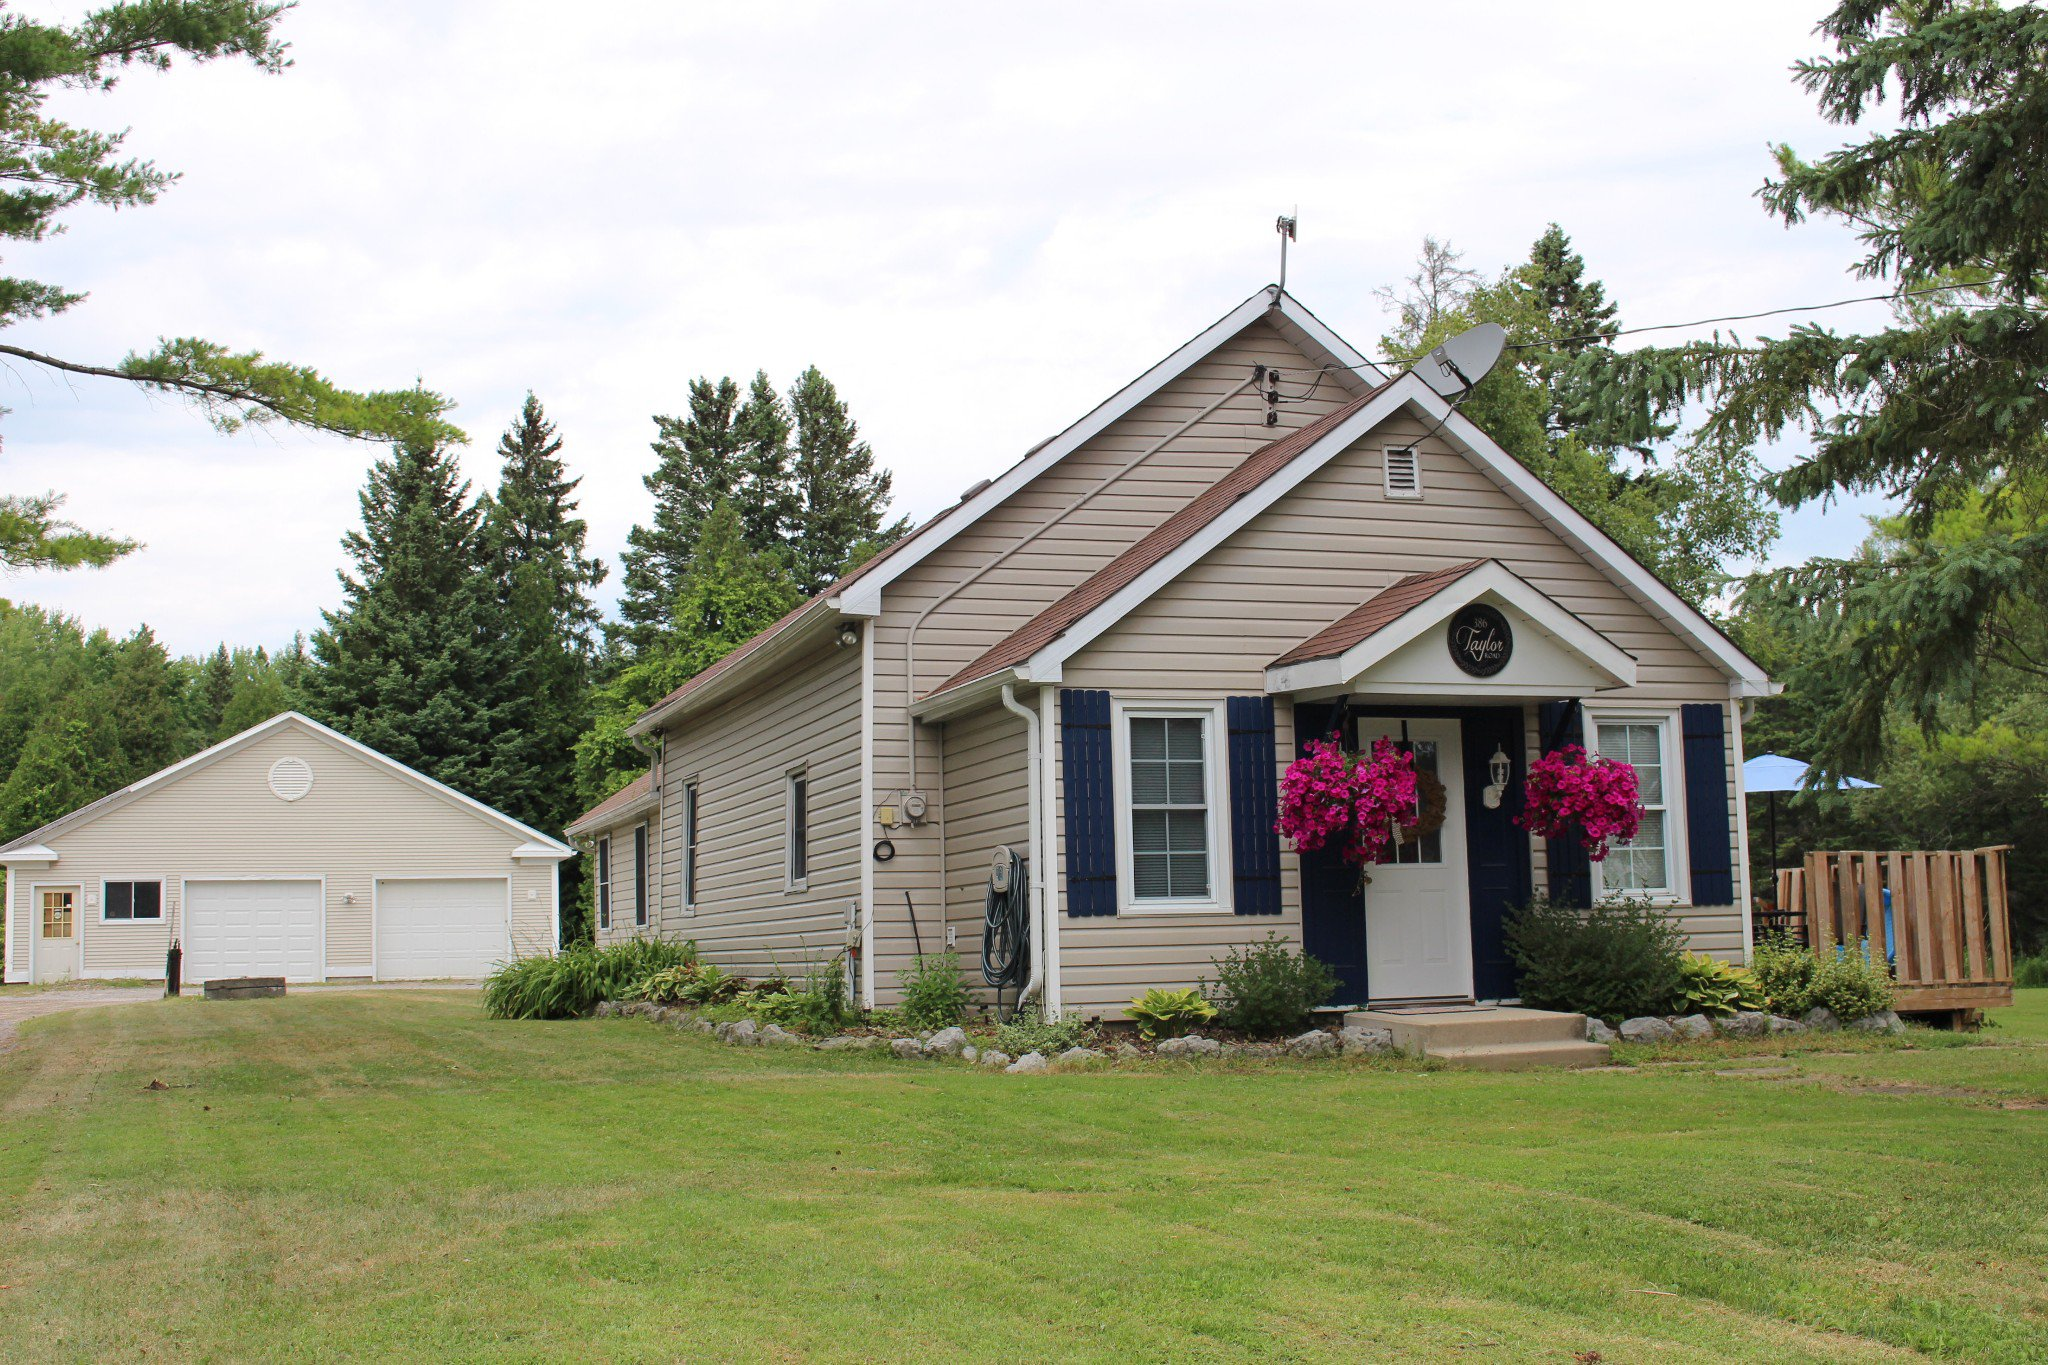 Main Photo: 386 Taylor Road in Burnley: Residential Detached for sale : MLS®# 140856